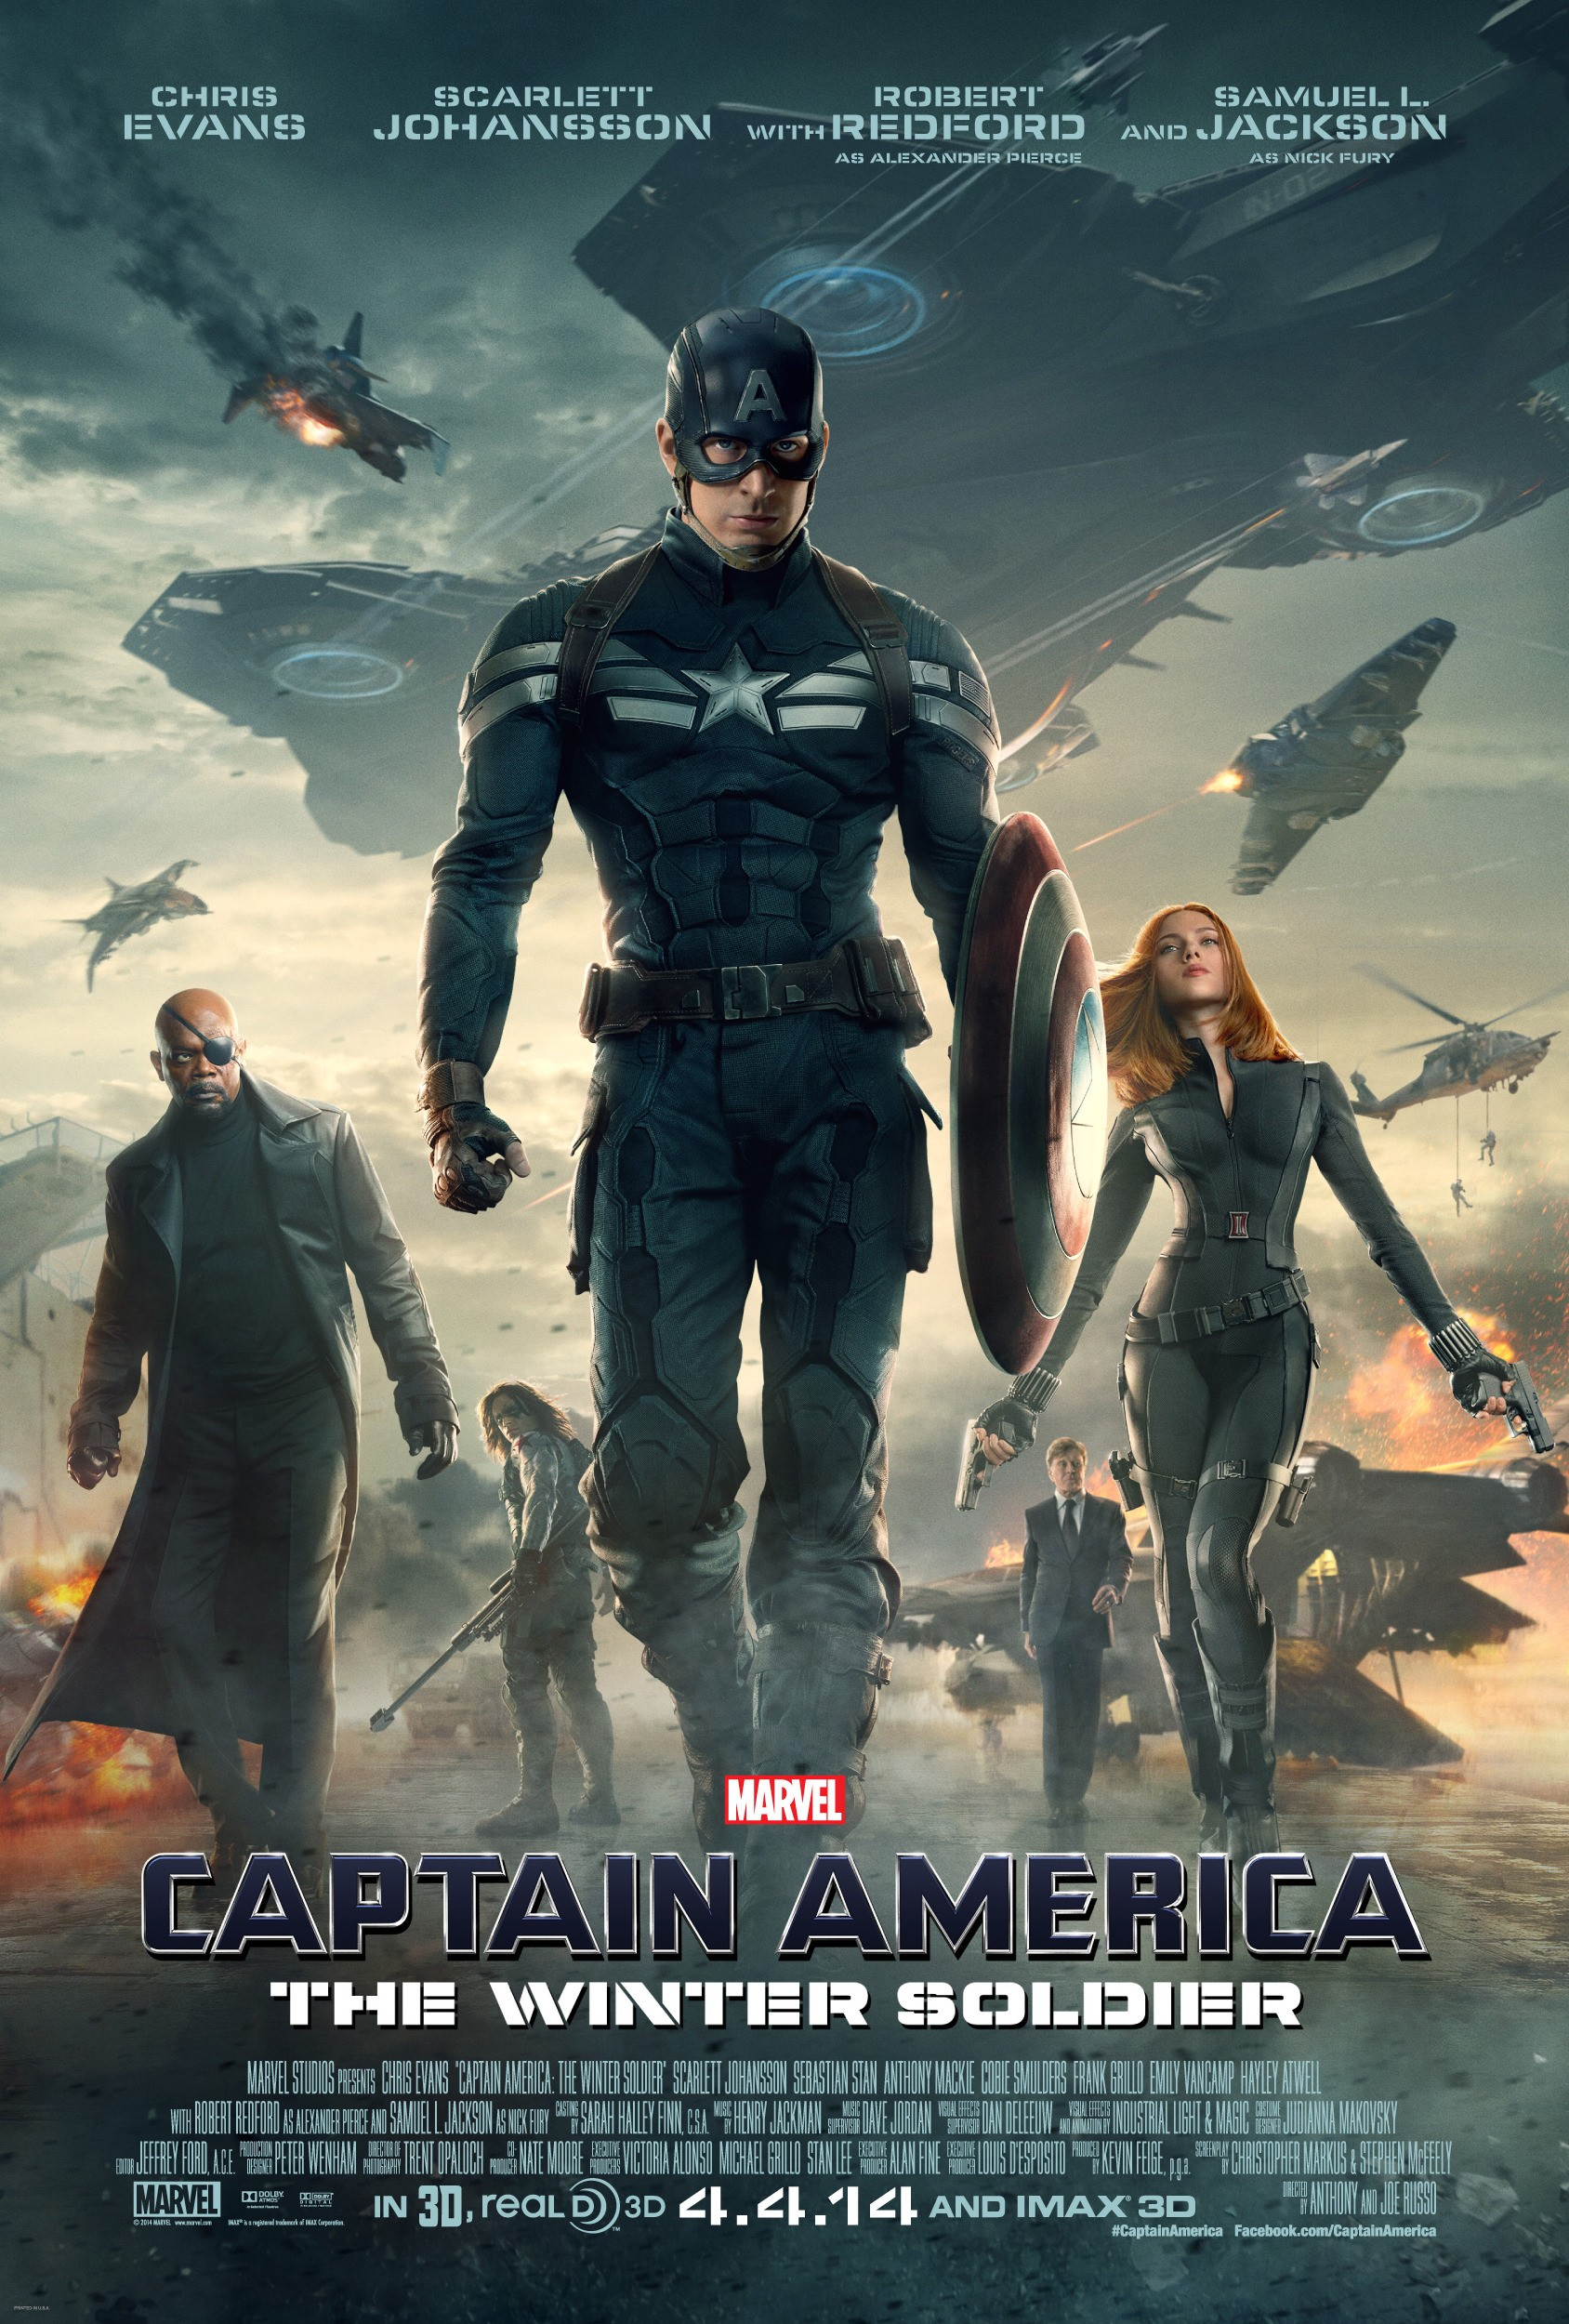 Captain America The Winter Soldier-Official Poster Banner PROMO XXLG-03FEVEREIRO2014-01